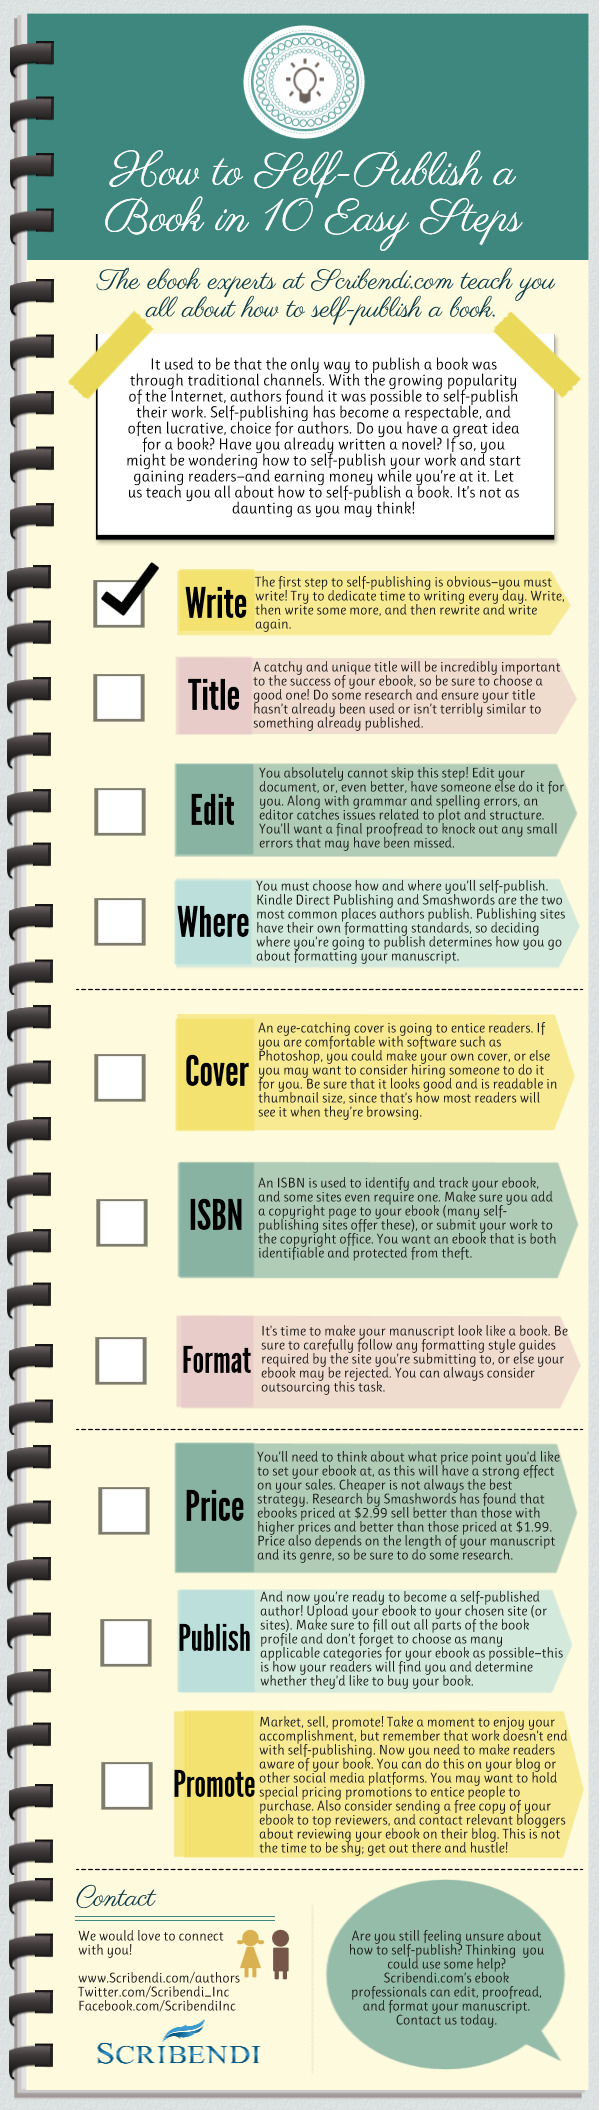 Scribendi.com's self-publishing infographic explains how to self-publish your book.